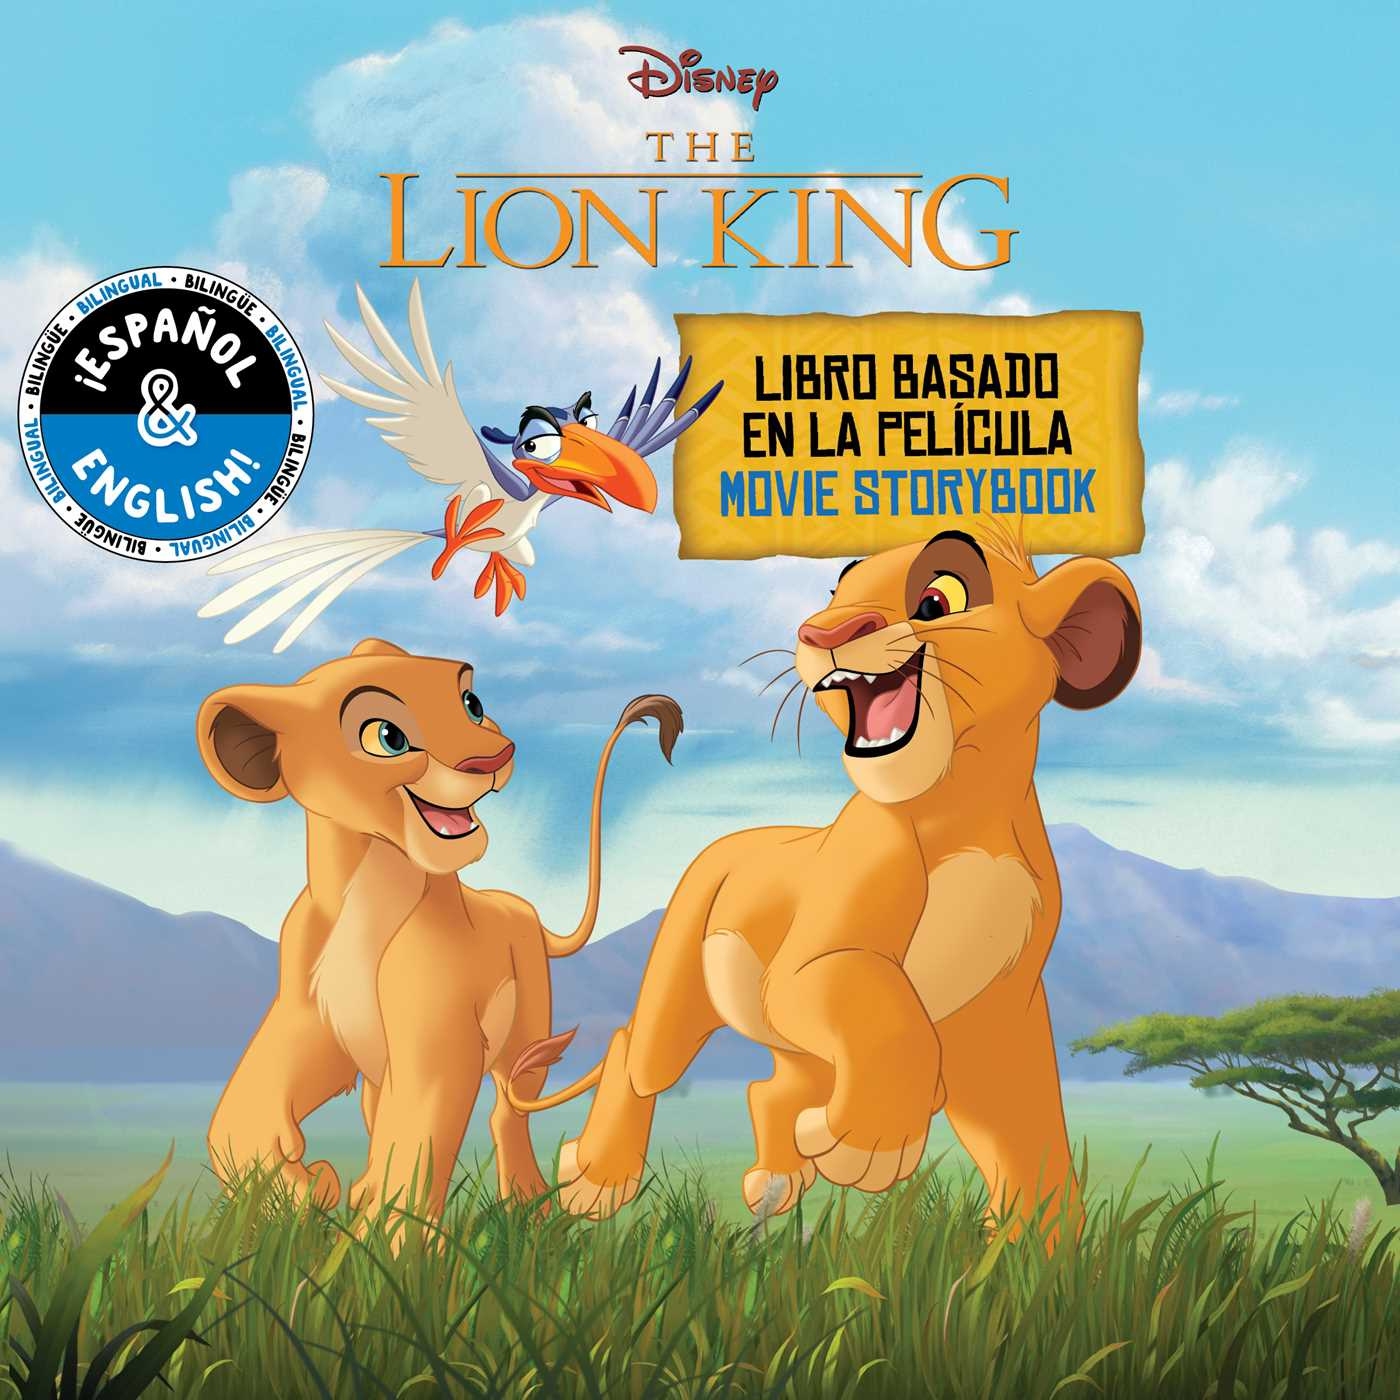 Wicked Libro Disney The Lion King Movie Storybook Libro Basado En La